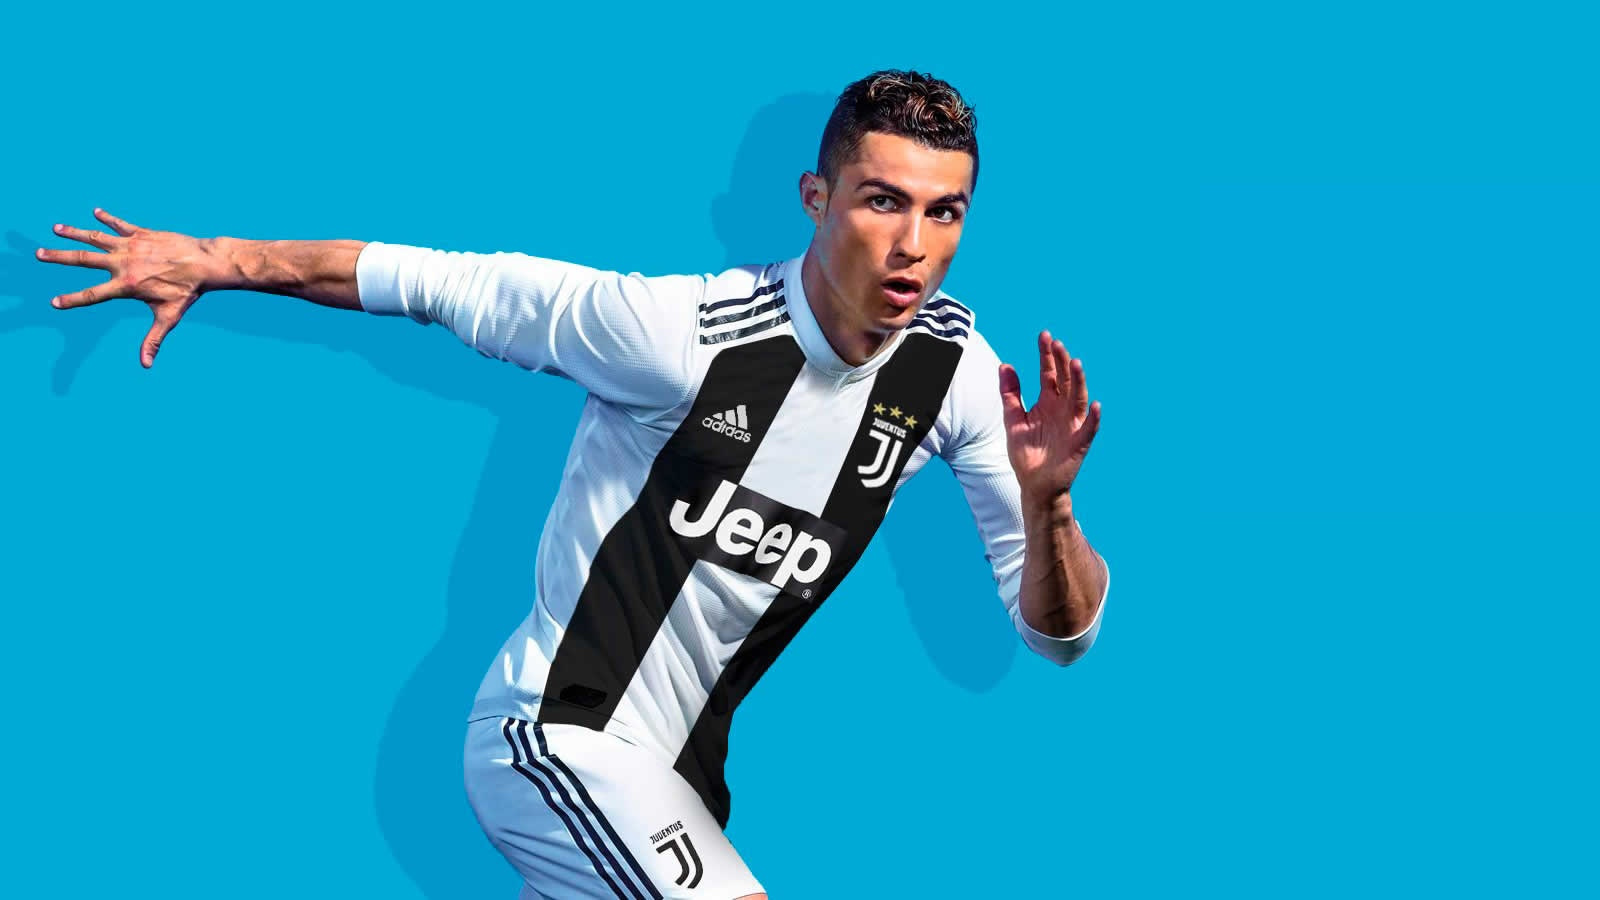 FIFA 19 Cover Star Under Fire Following Serious Allegation, EA